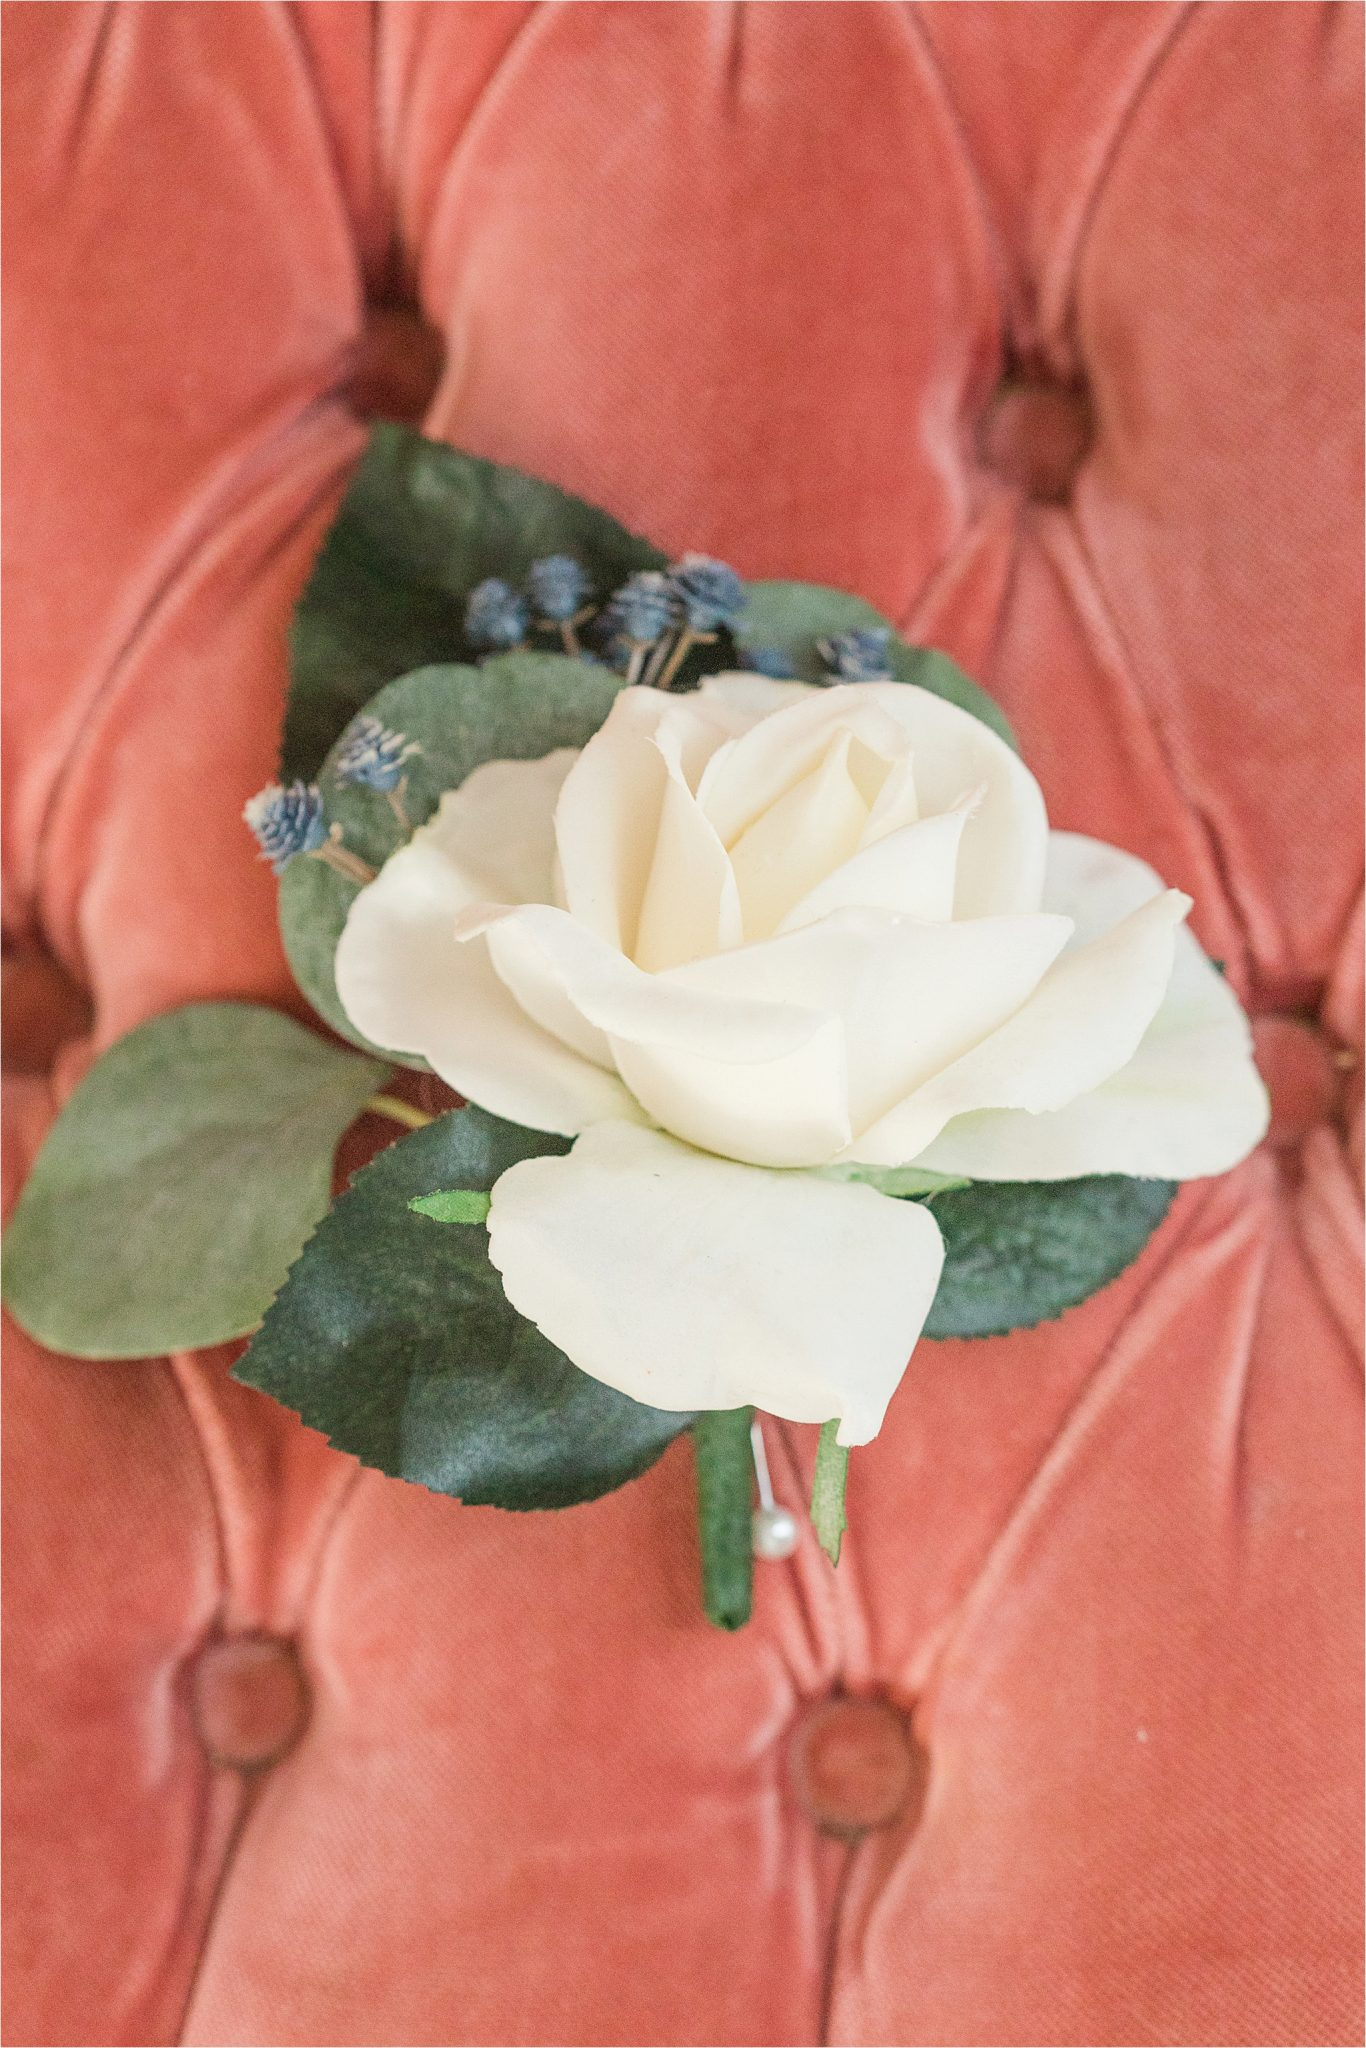 realistic-arificial-flowers-white-rose-corsage-wedding-periwinkle-raspberry-terra cotta